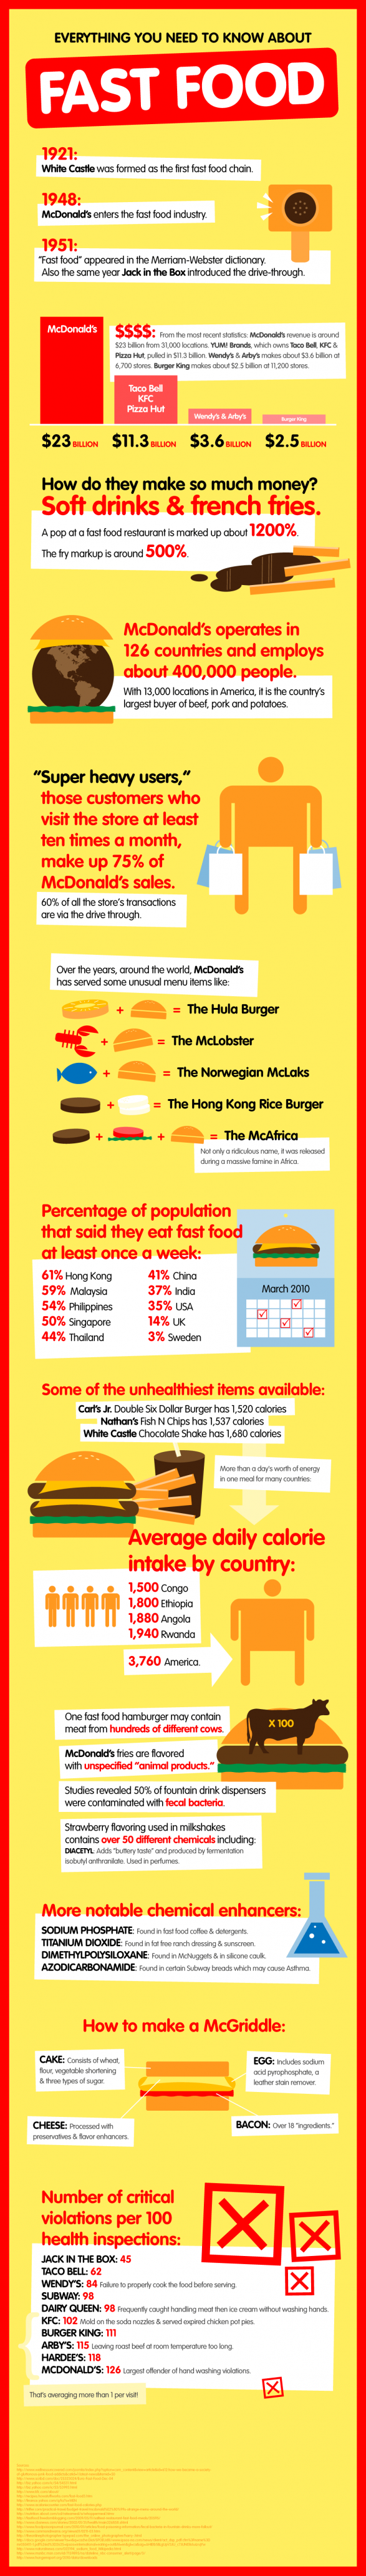 Fast Food Infographic: Holy Gross!